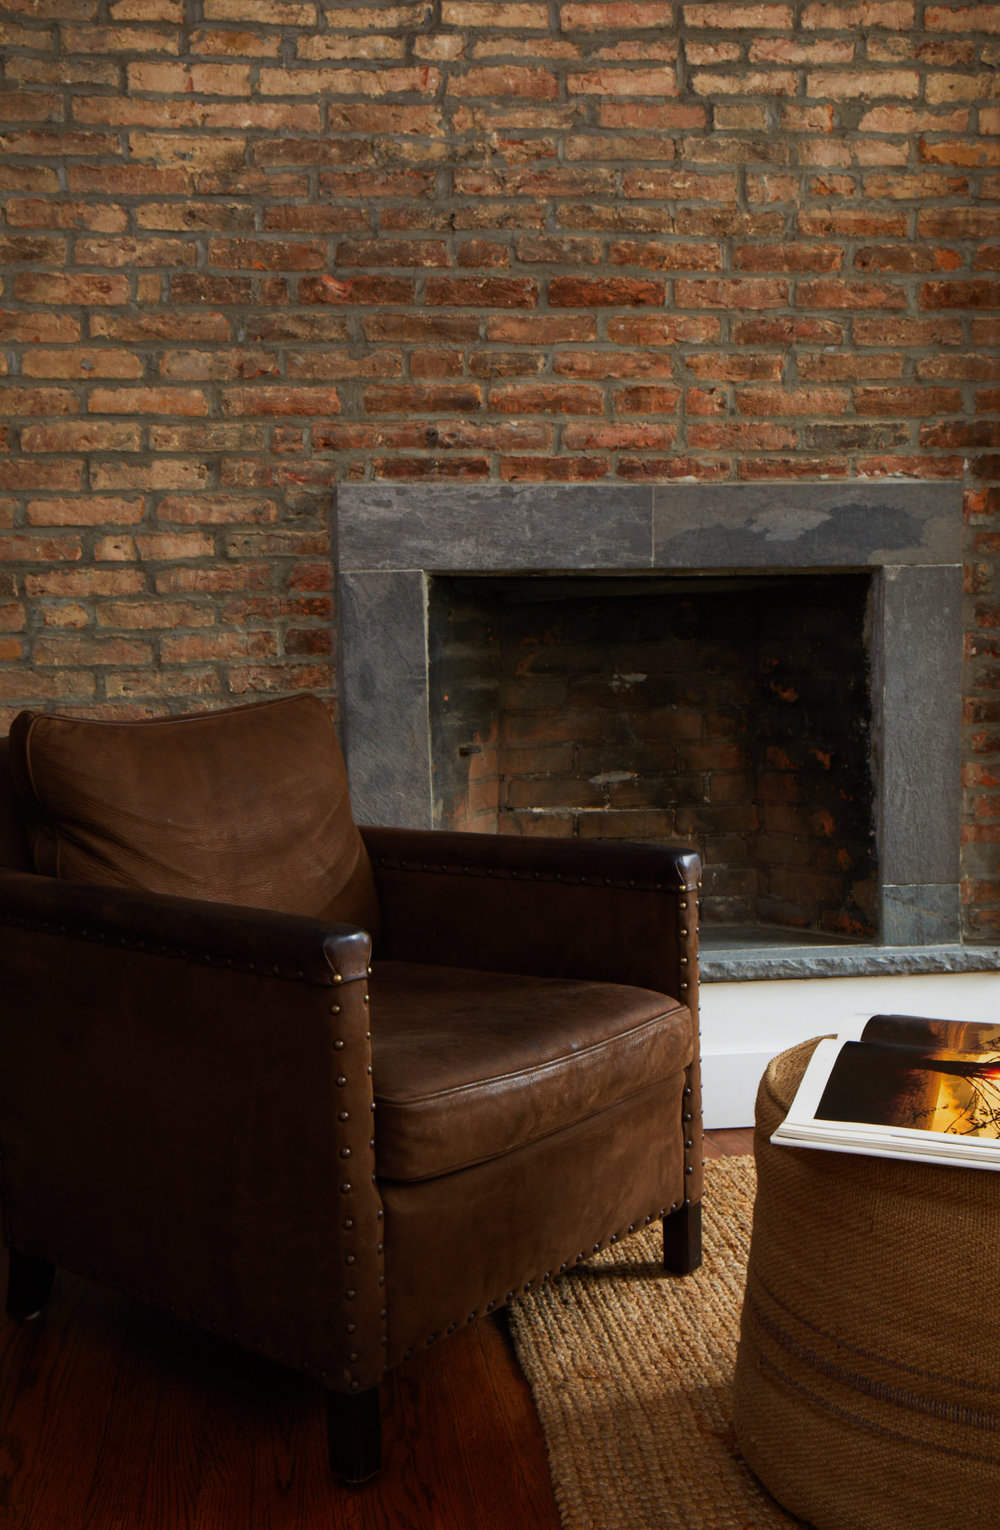 Arm chair and fireplace with reading material in the Half Pint.